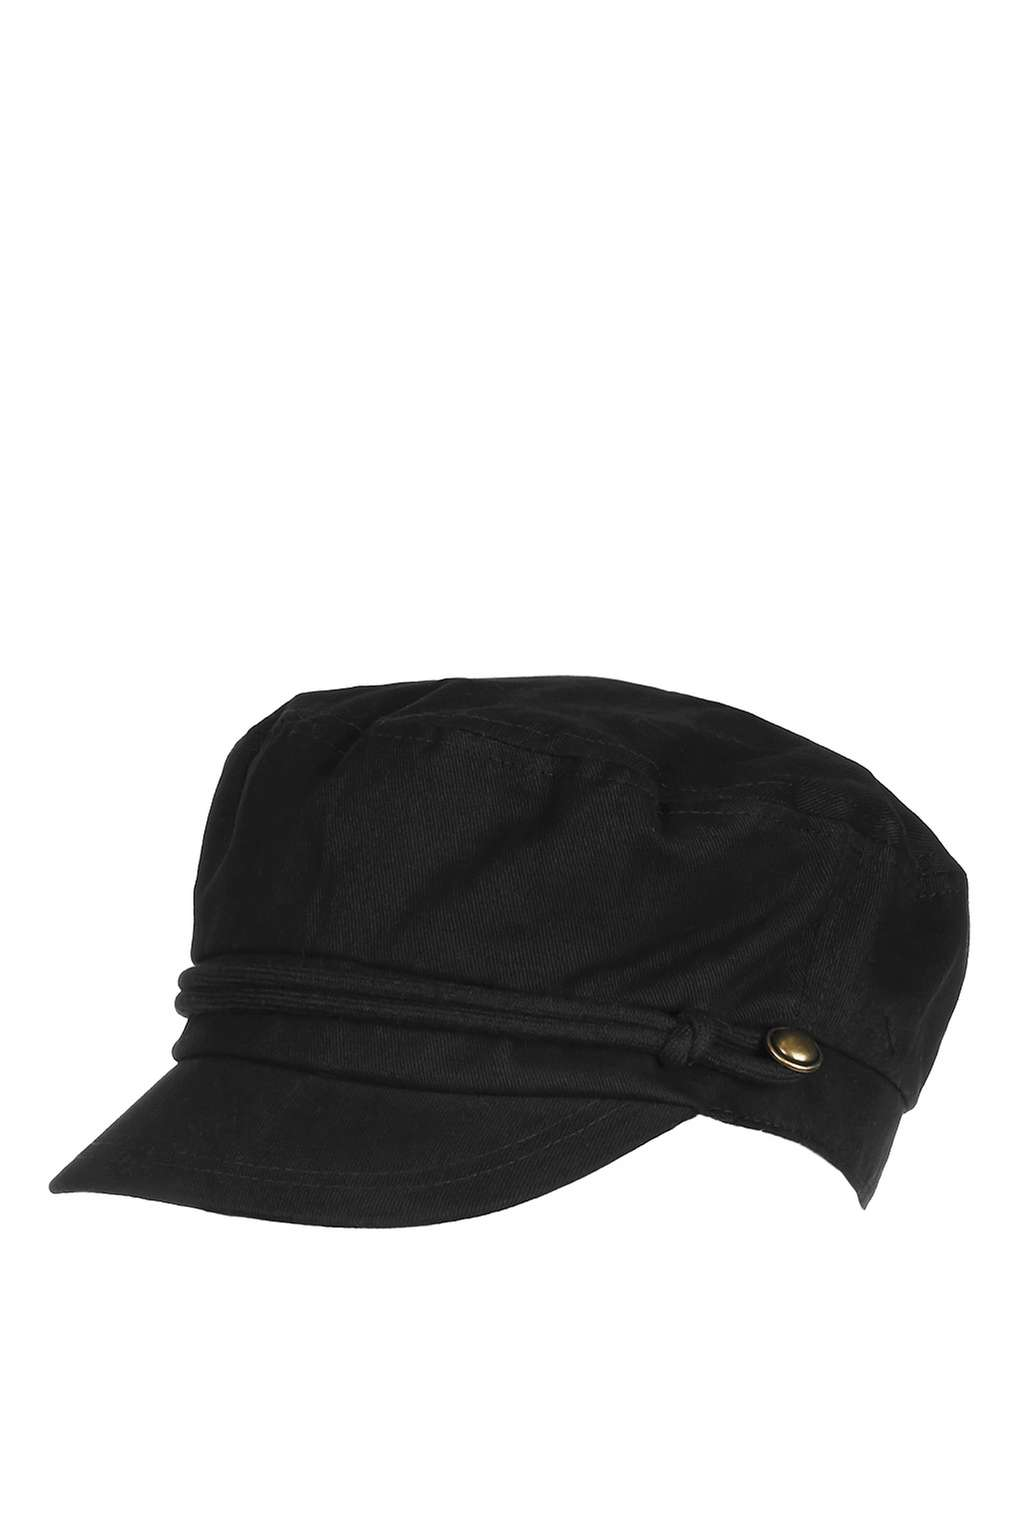 Women's Black Leather Baker Boy Cap $ From FORWARD Price last checked 5 hours ago Product prices and availability are accurate as of the date/time indicated and are subject to heresfilmz8.ga: $